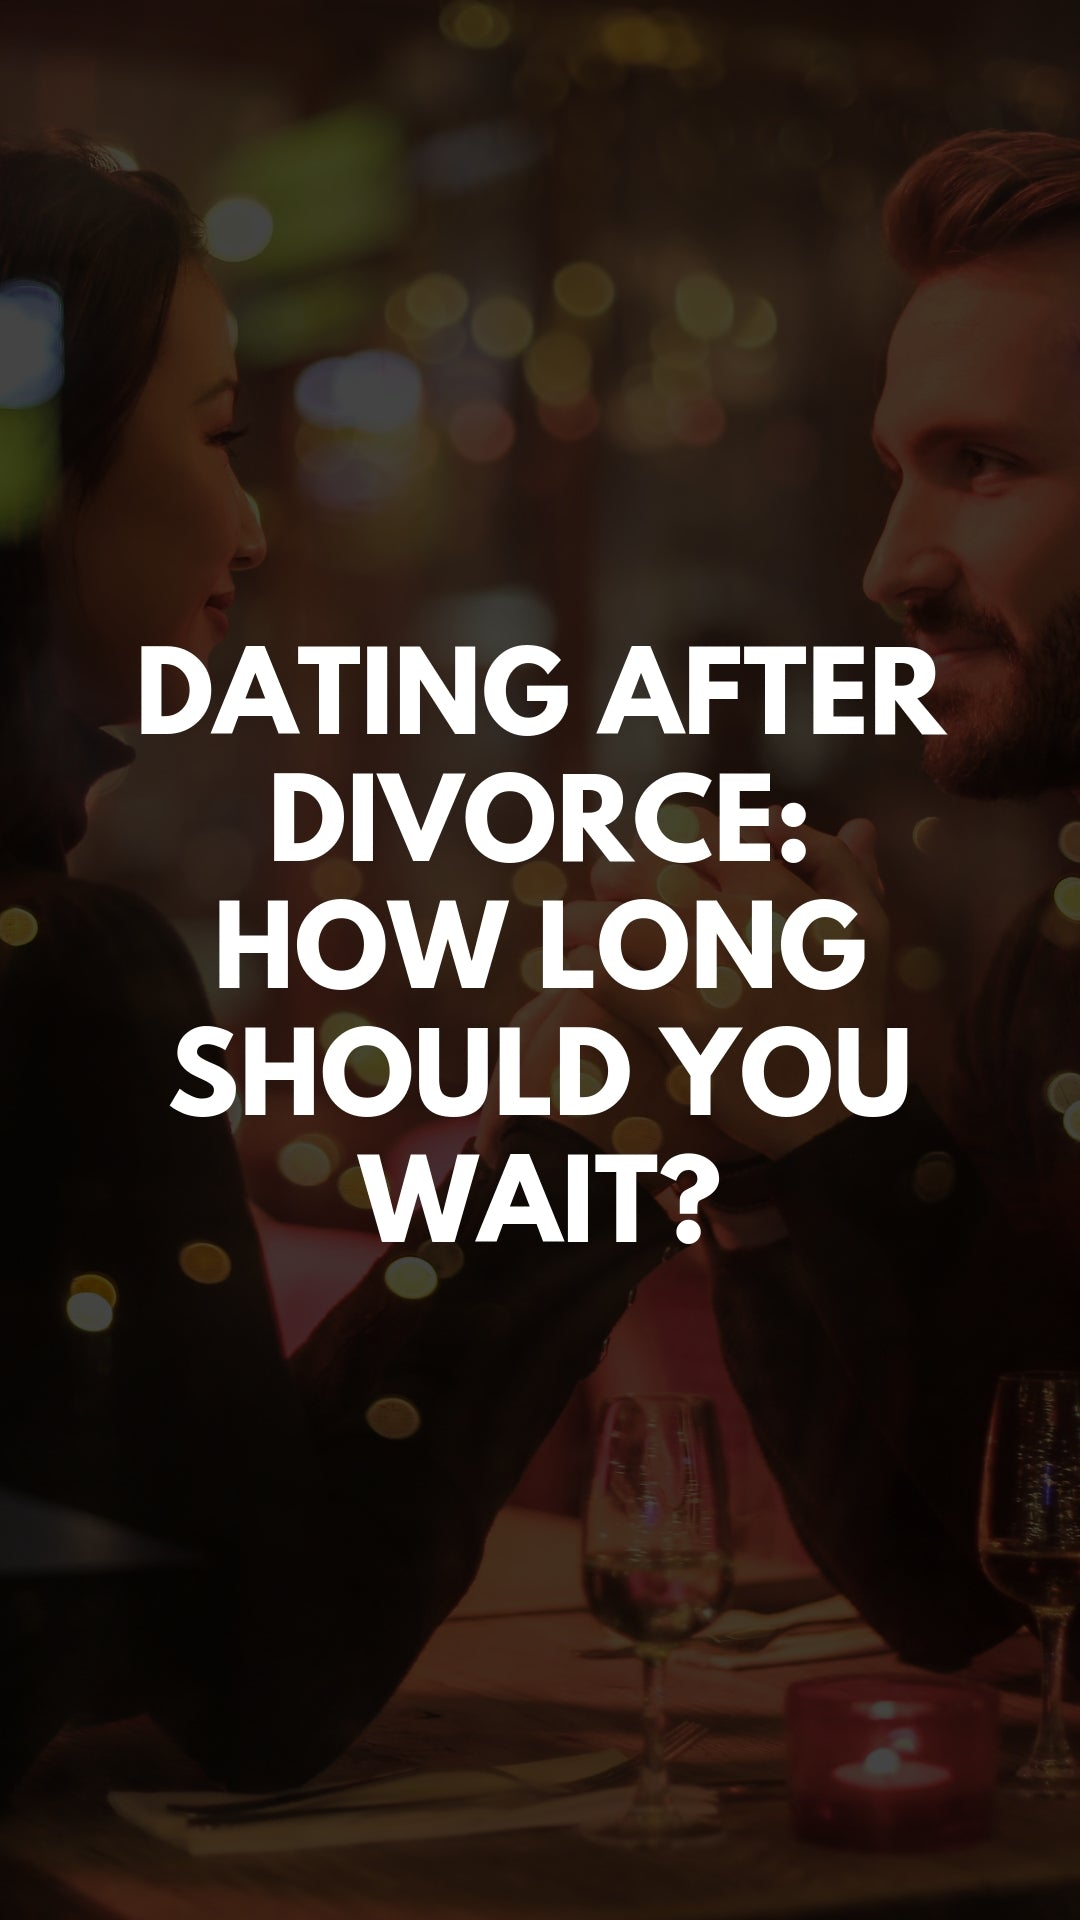 DATING AFTER DIVORCE: HOW LONG SHOULD YOU WAIT?